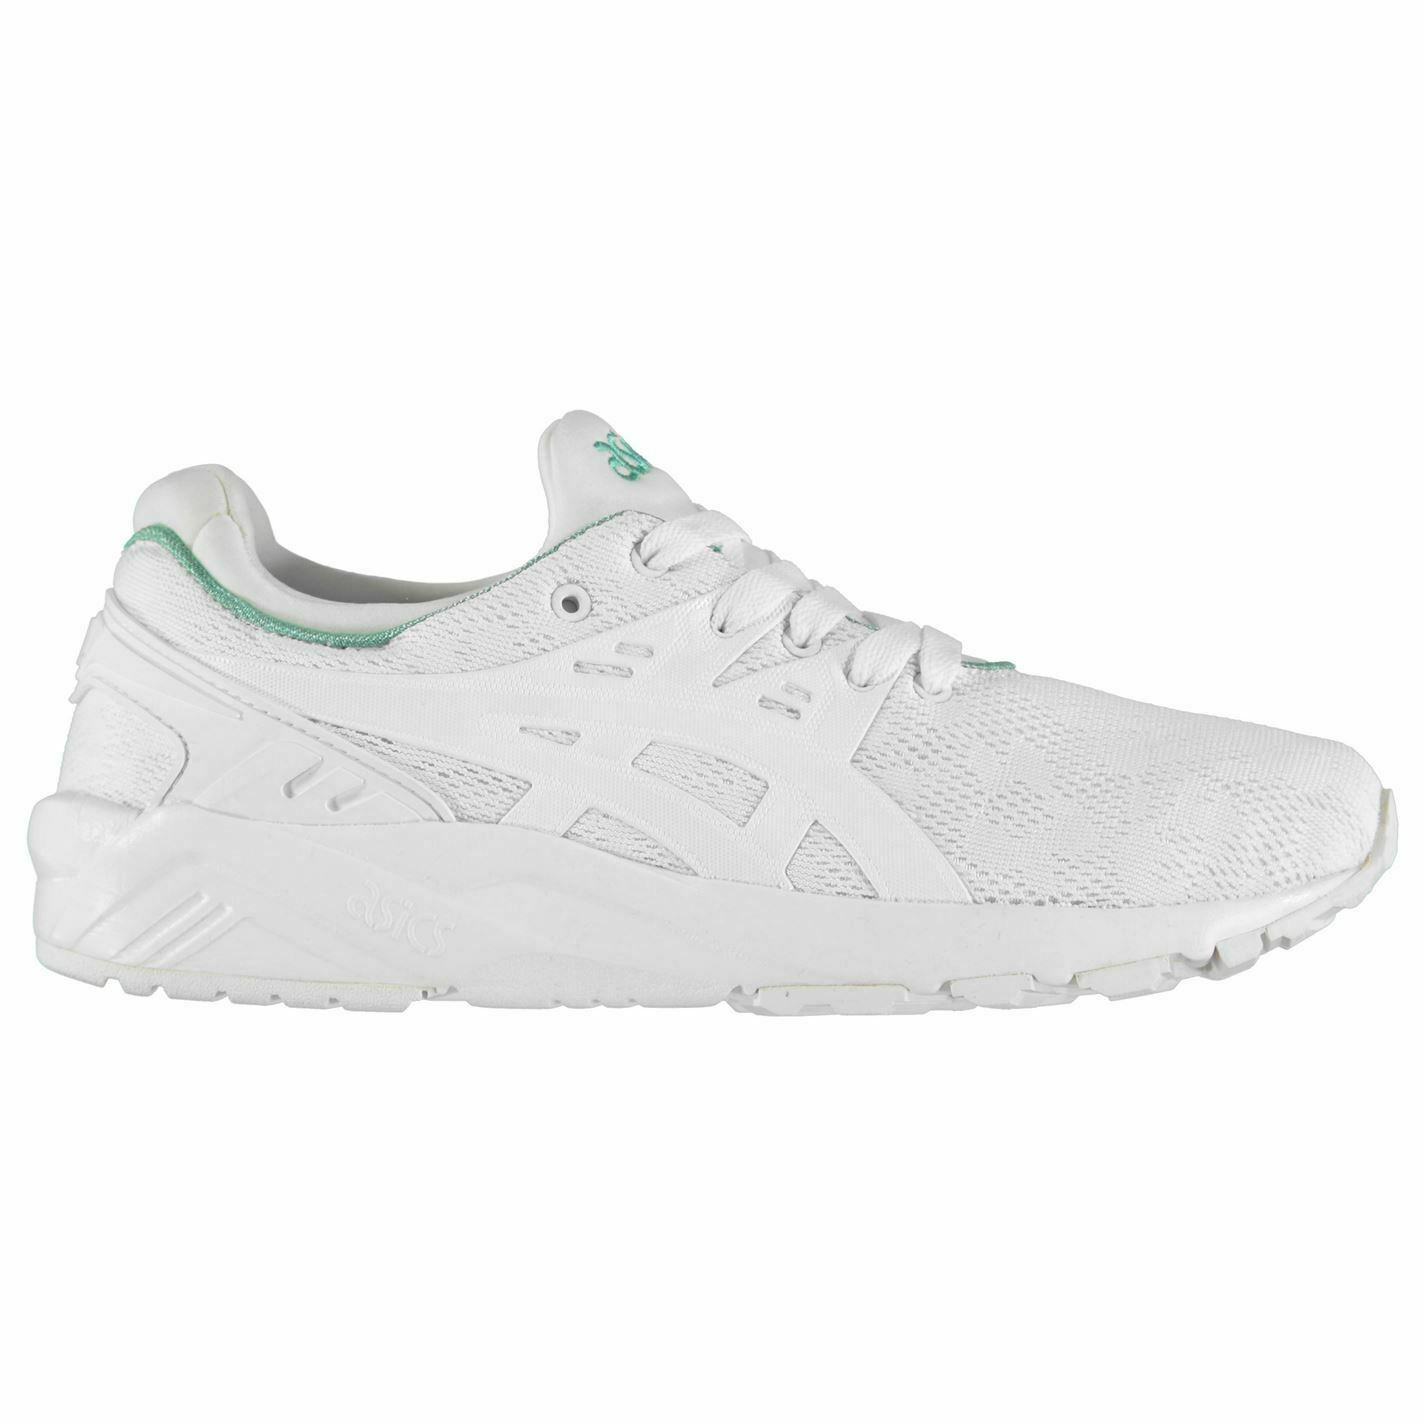 5602fb586 Asics Gel Kayano Evo Running shoes Womens White Fitness Trainers Sneakers